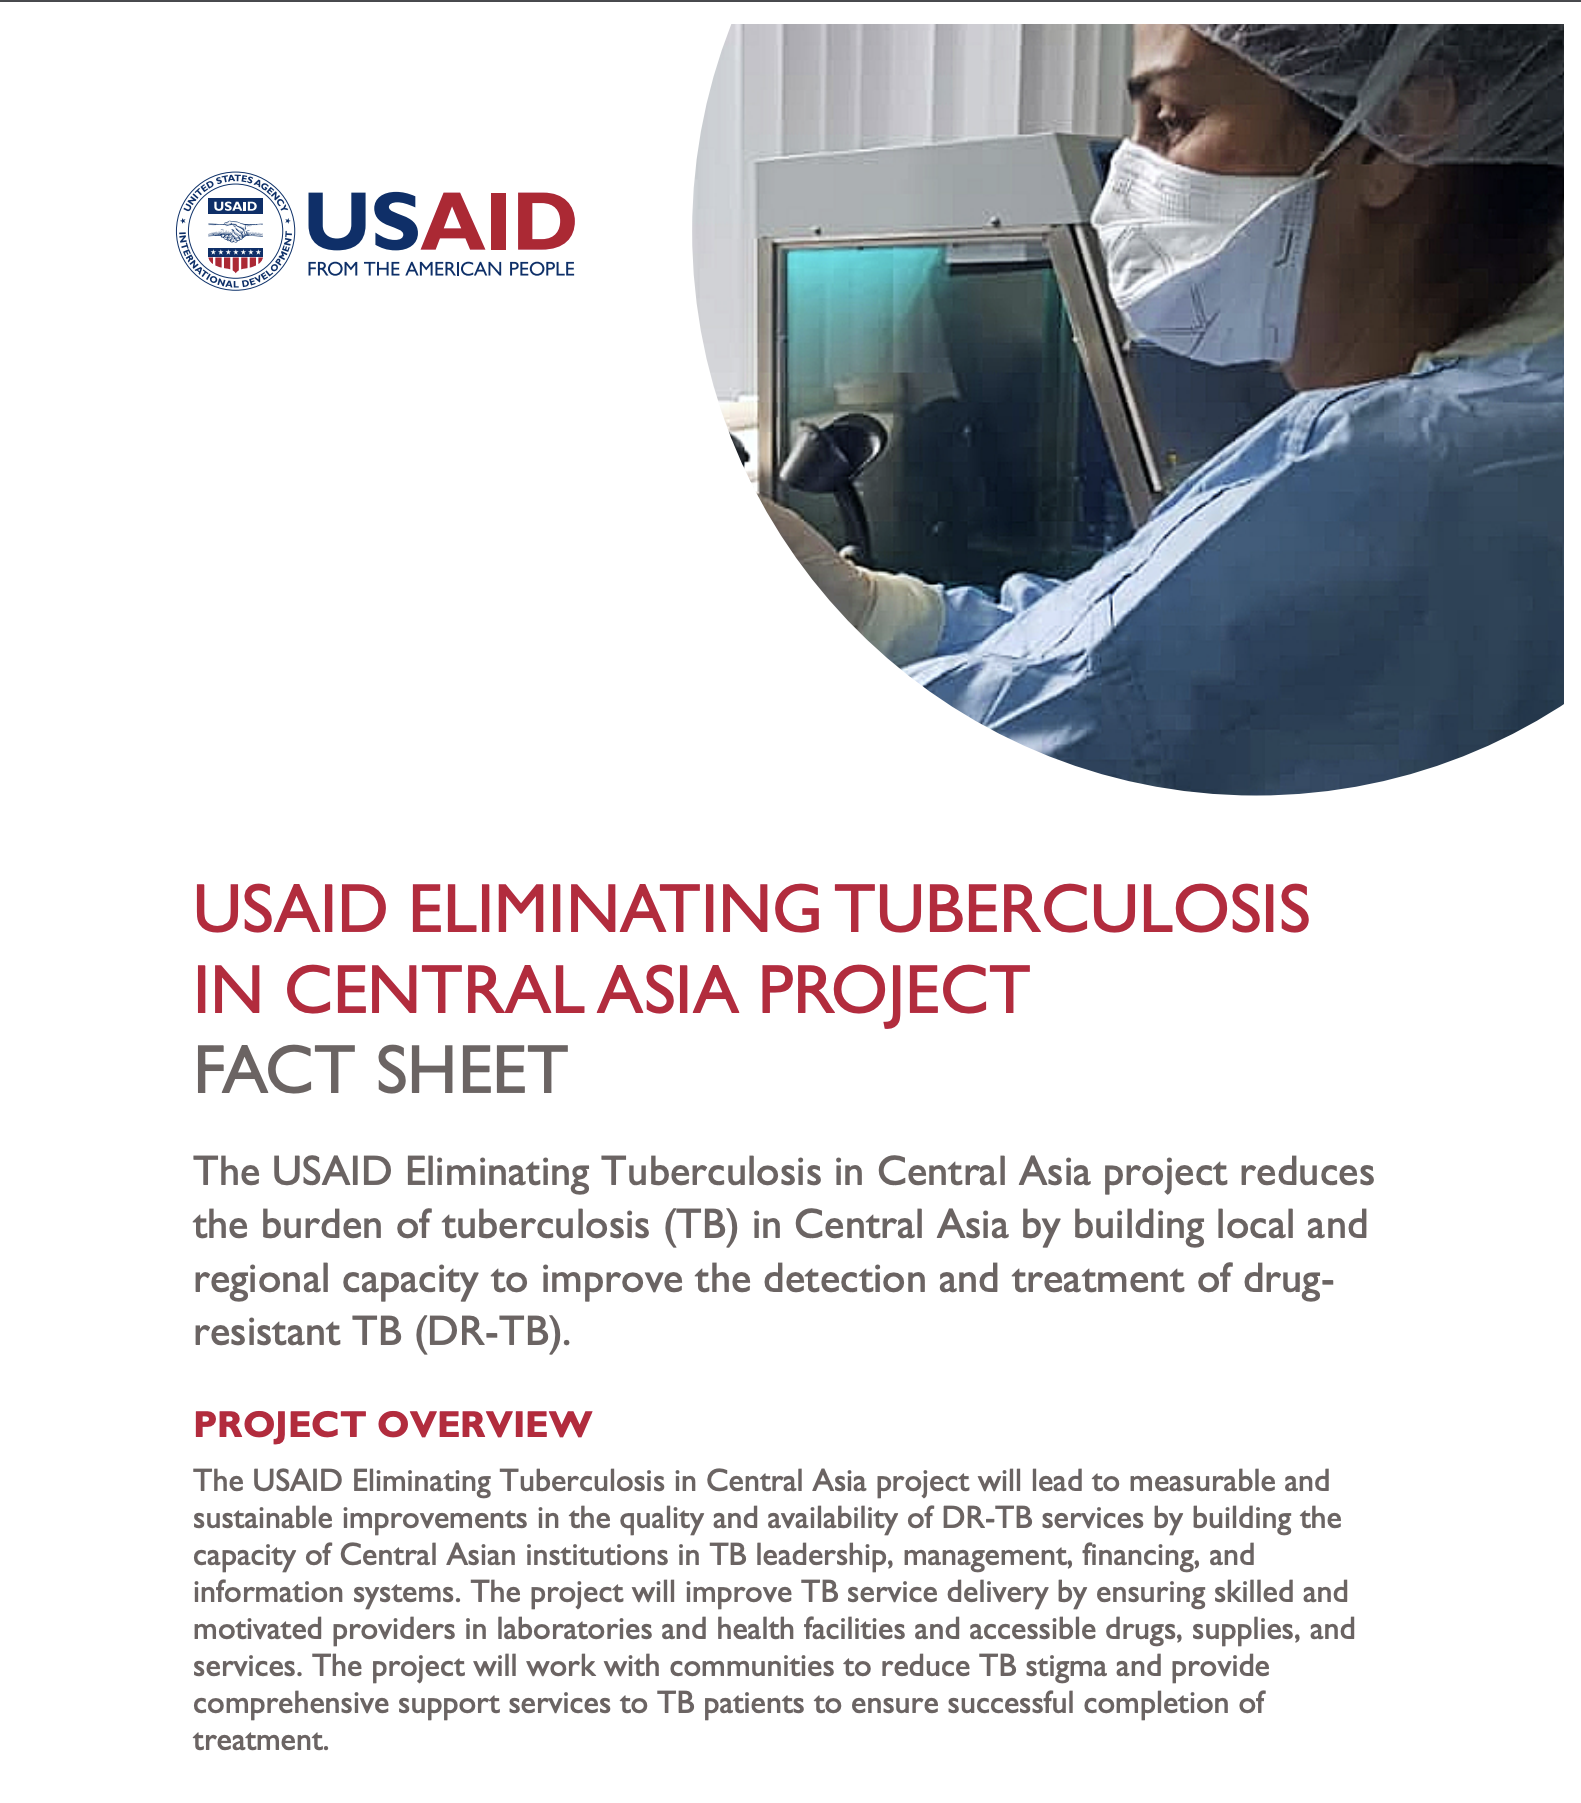 USAID Eliminating Tuberculosis in Central Asia